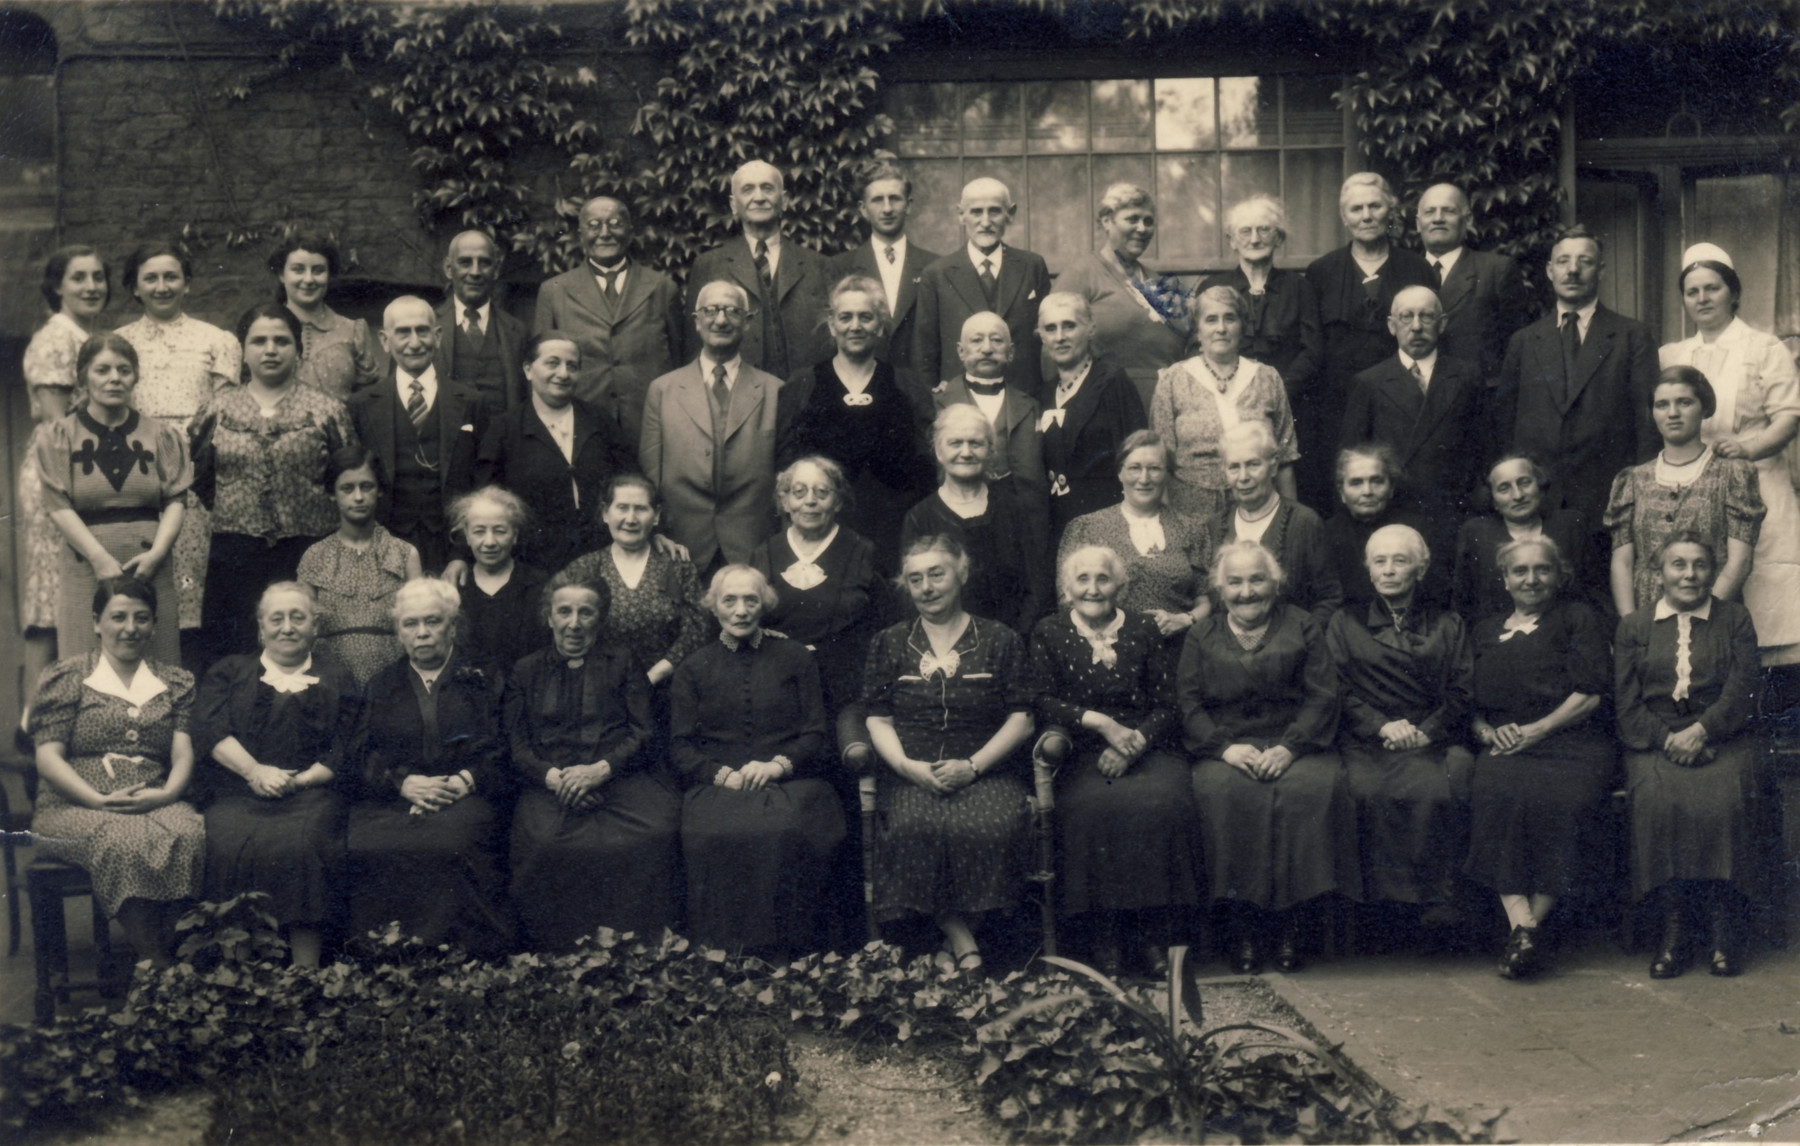 Group portrait of the residents of a Jewish senior home in Muenchen-Gladbach.  Among those pictured is Katherine David, grandmother of the donor (front row, third from left).  The family was informed by a Mrs. Cohen that she died on the train to Theresienstadt.  Also pictured is Josef Willner (standing second row from the back , third from the left).